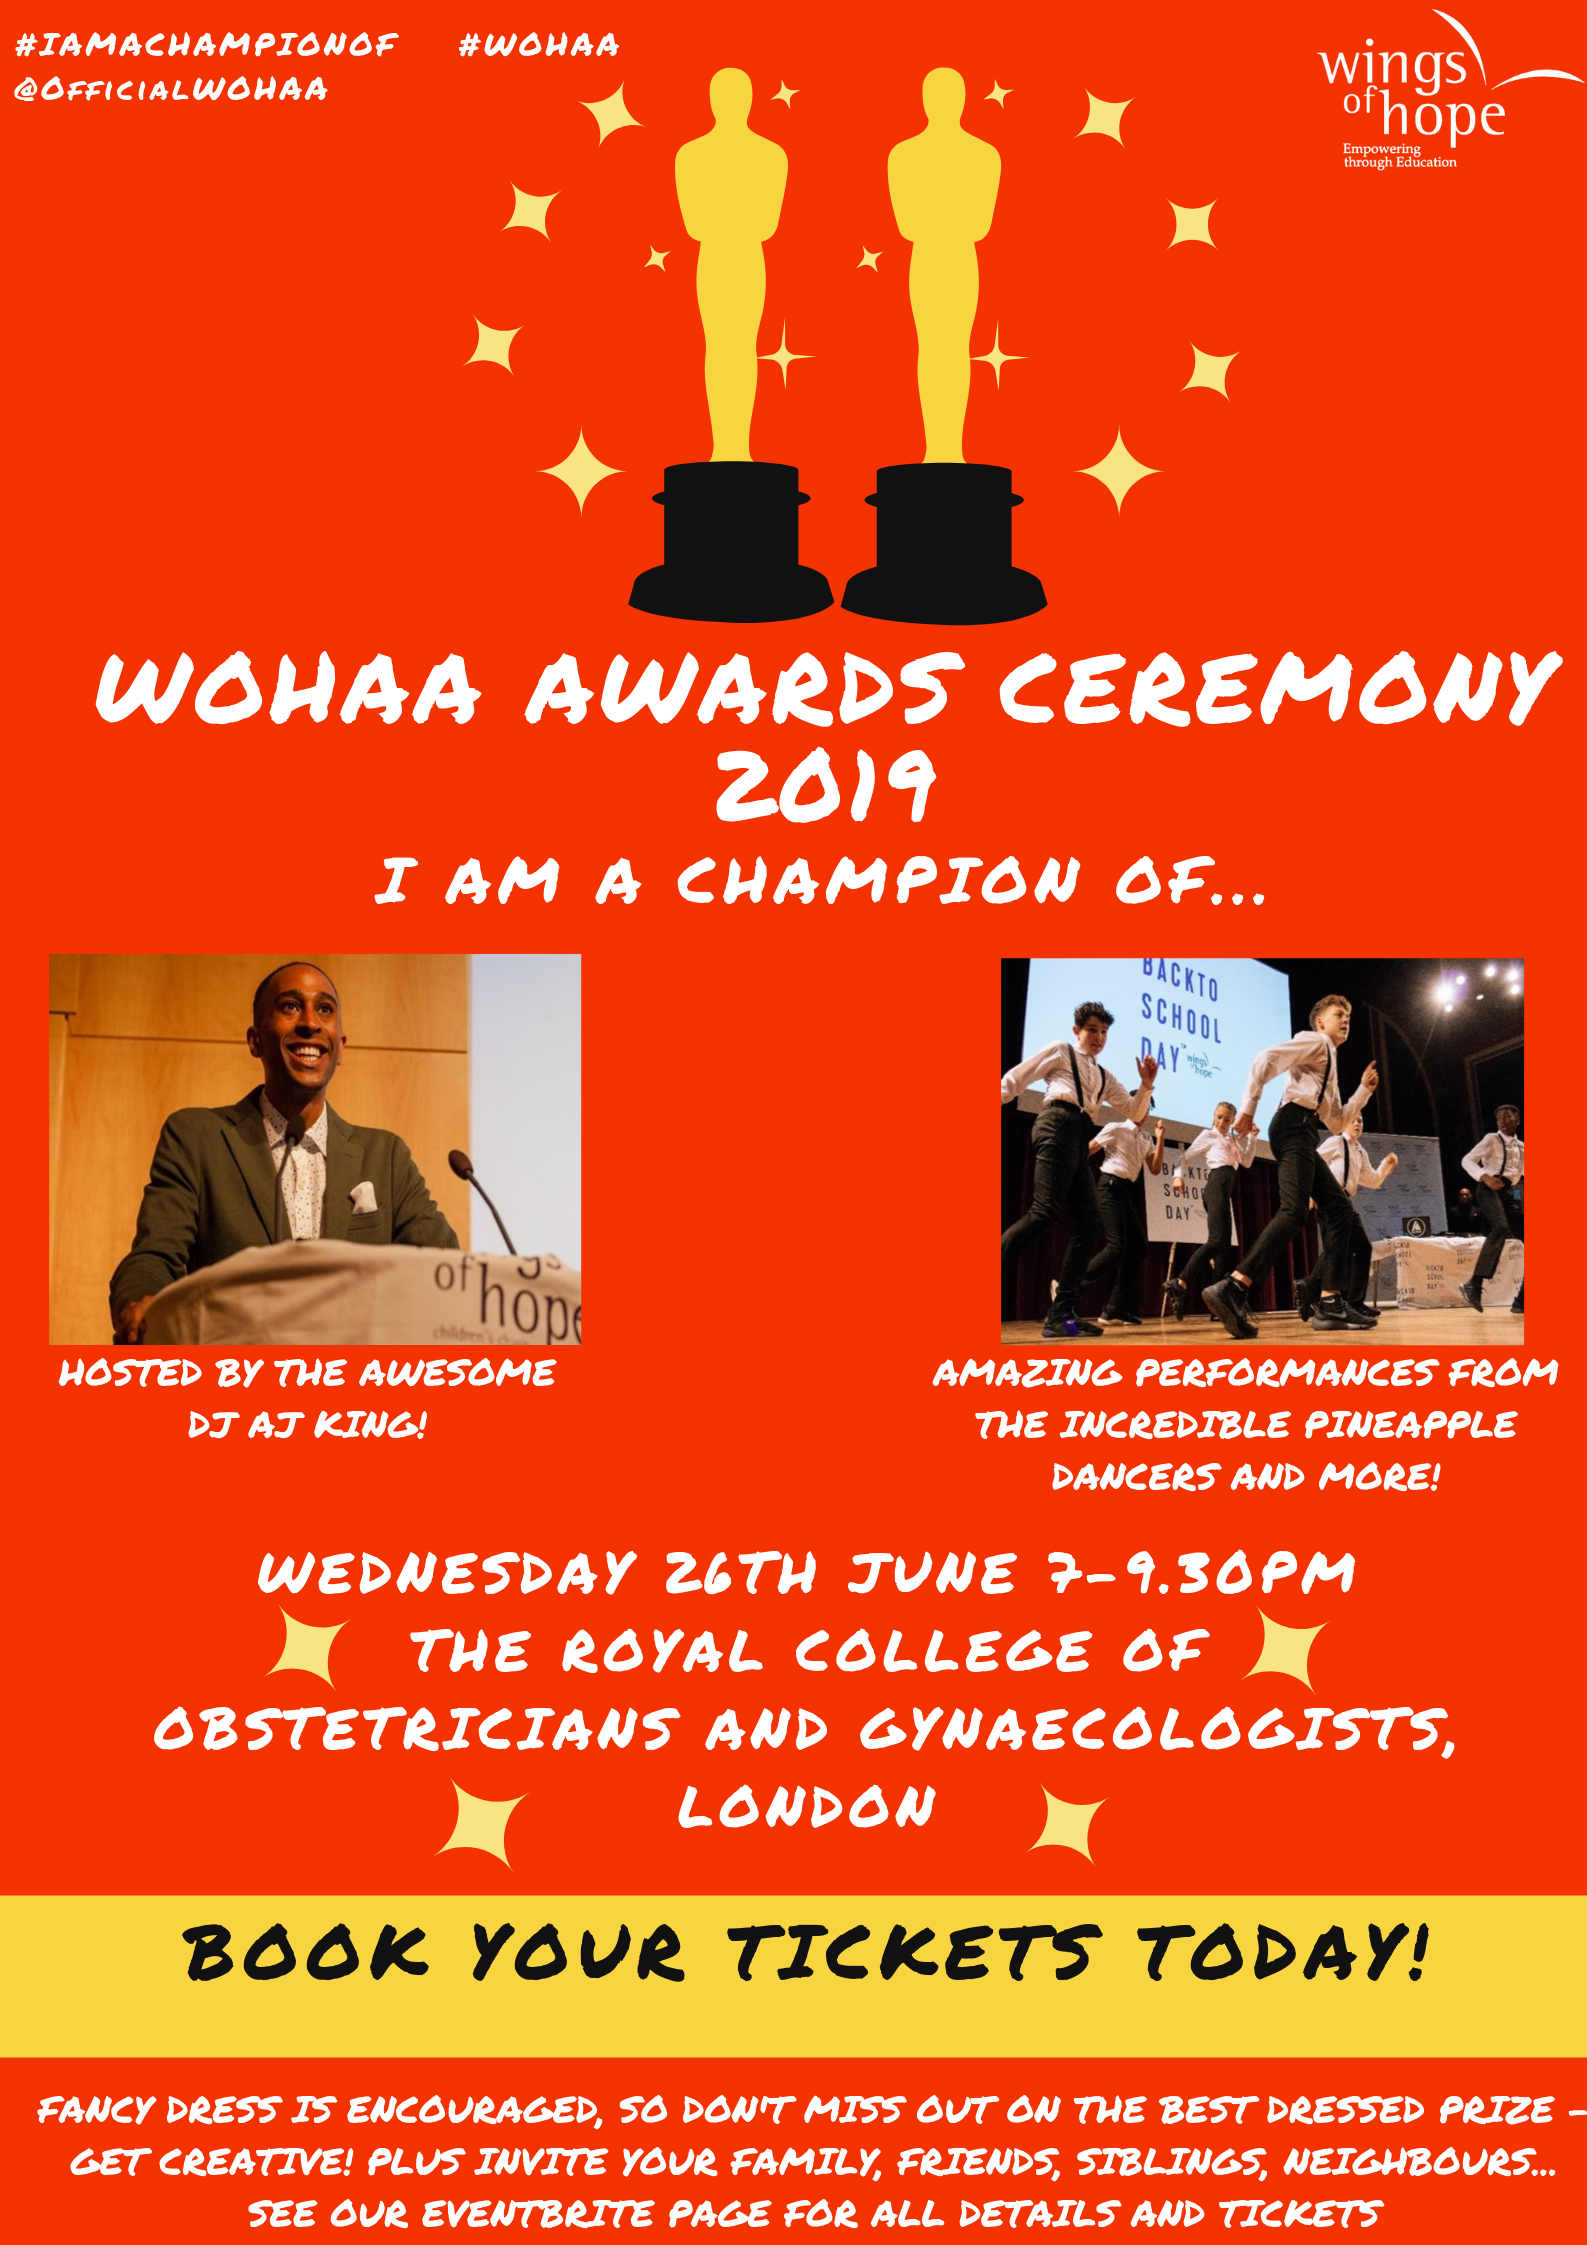 Flyer for the Wings of Hope Achievement Awards Ceremony 2019